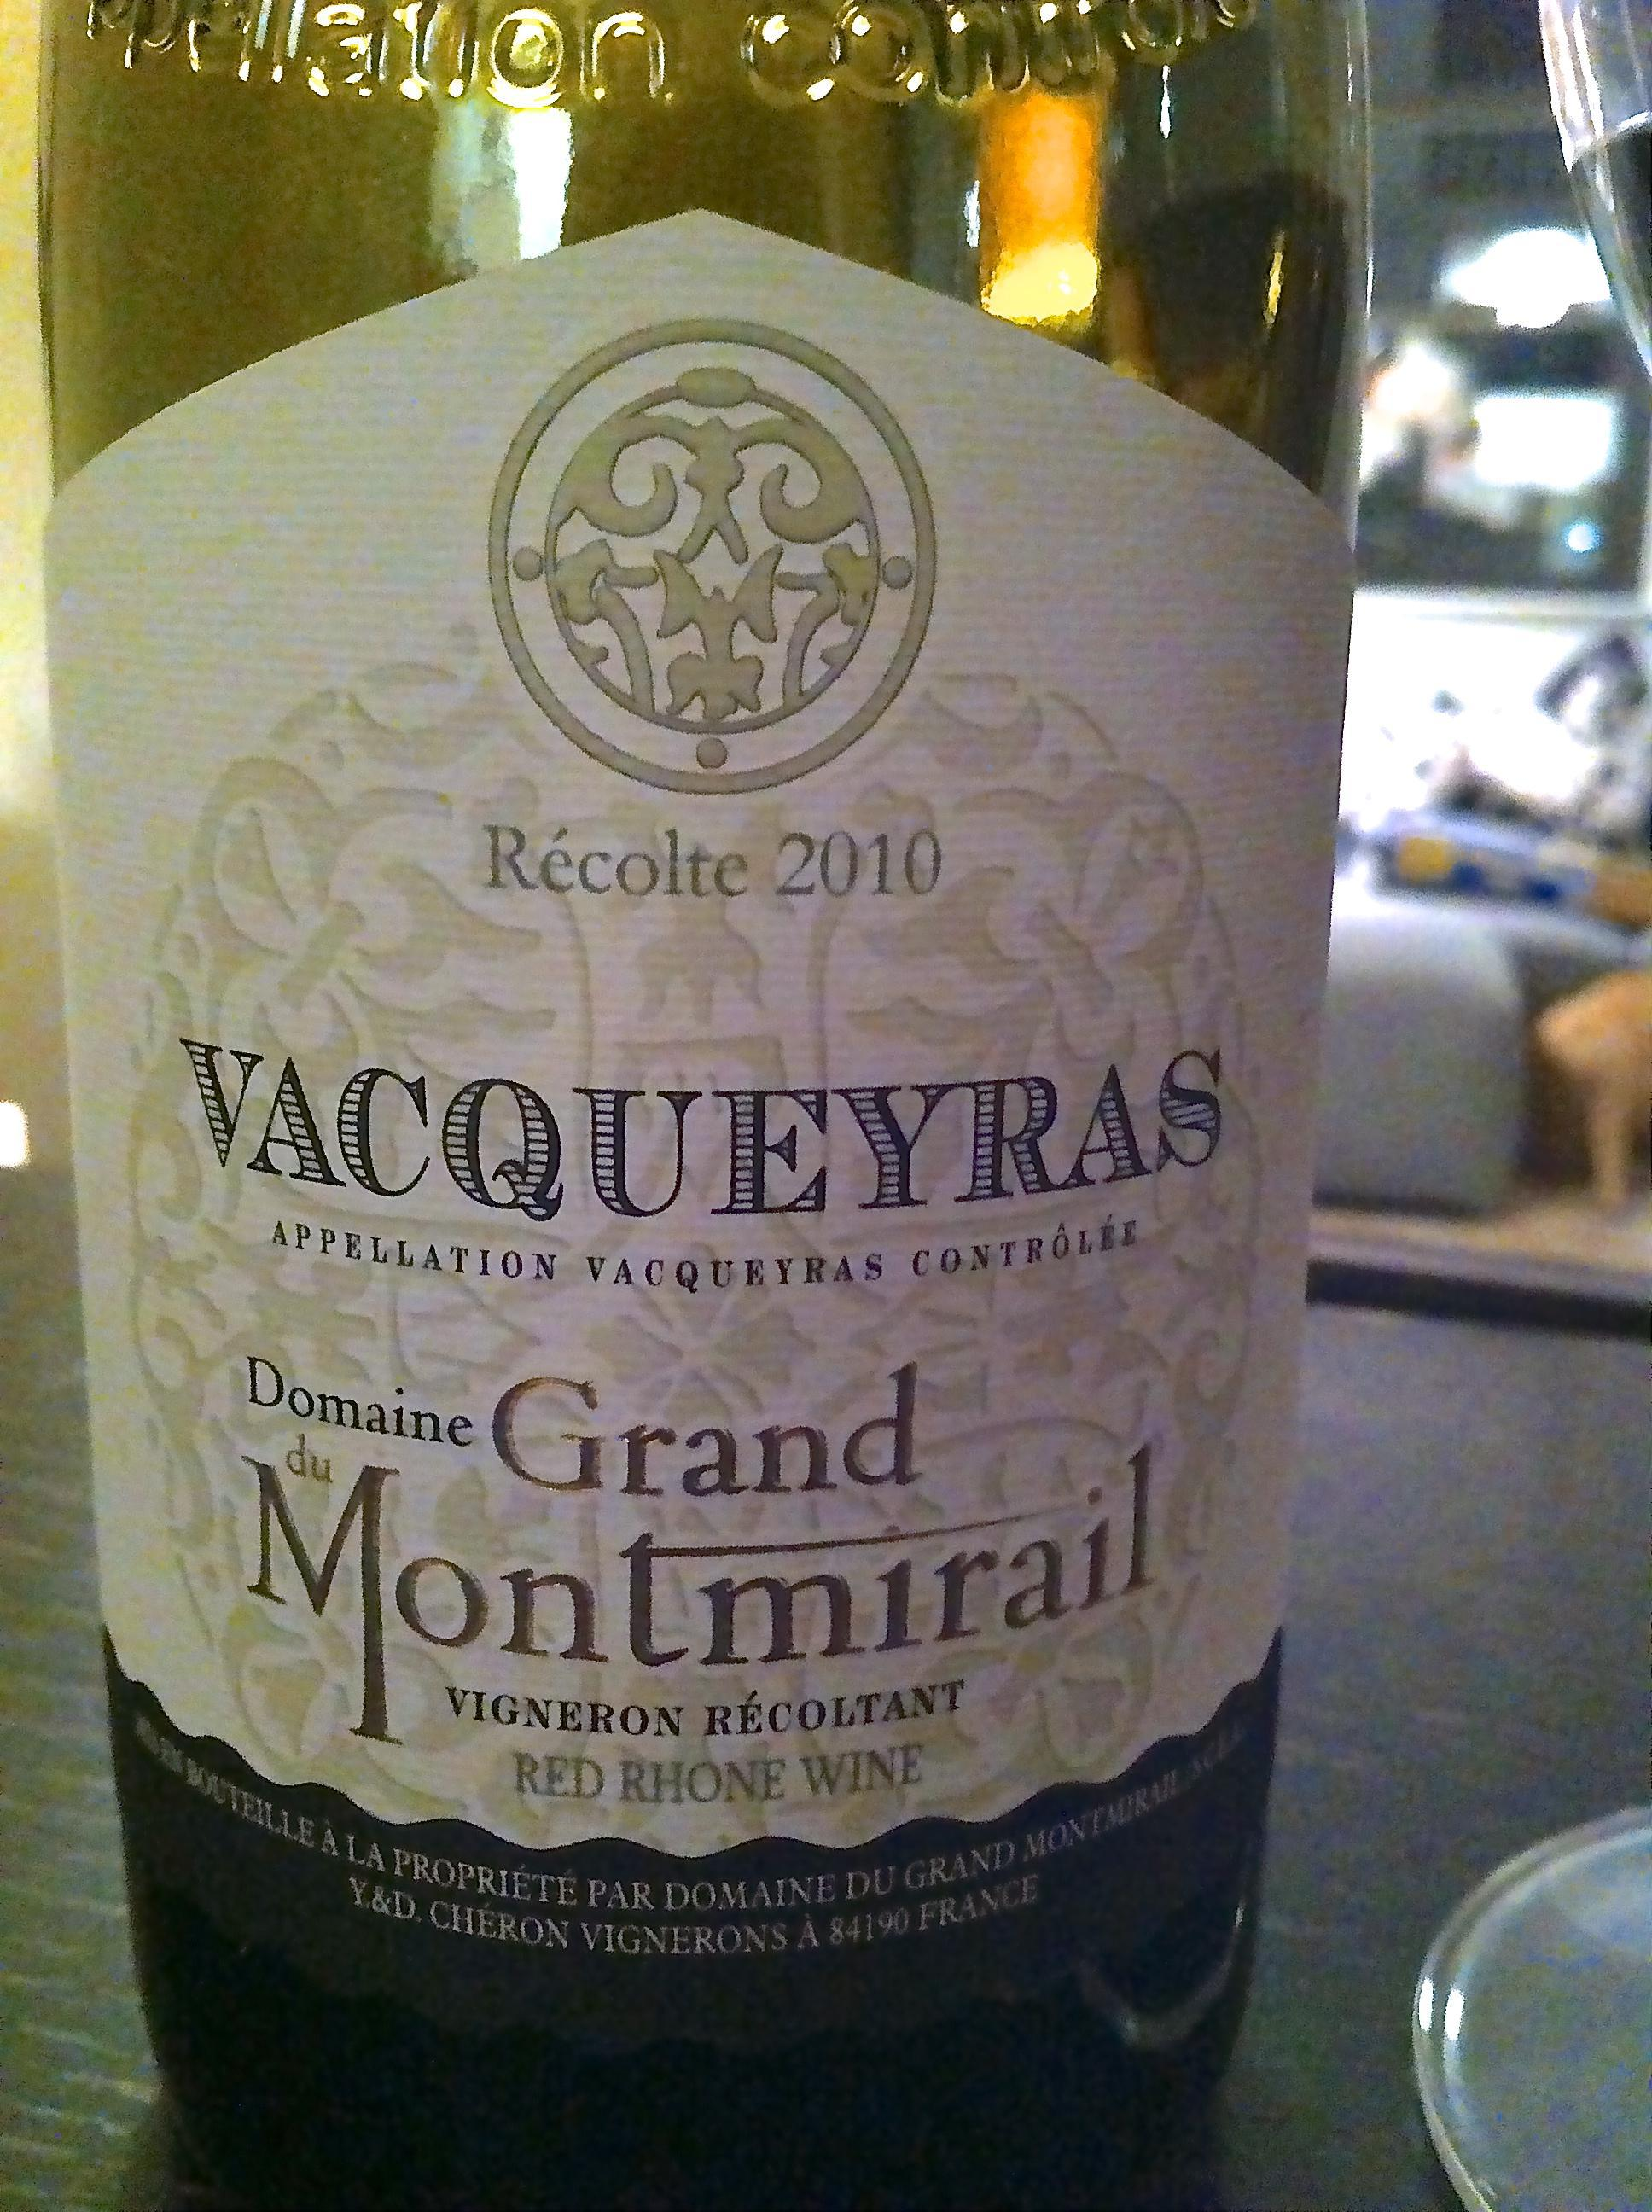 Domaine du Grand Montmirail, Vacqueyras, Rhone Valley, France 2